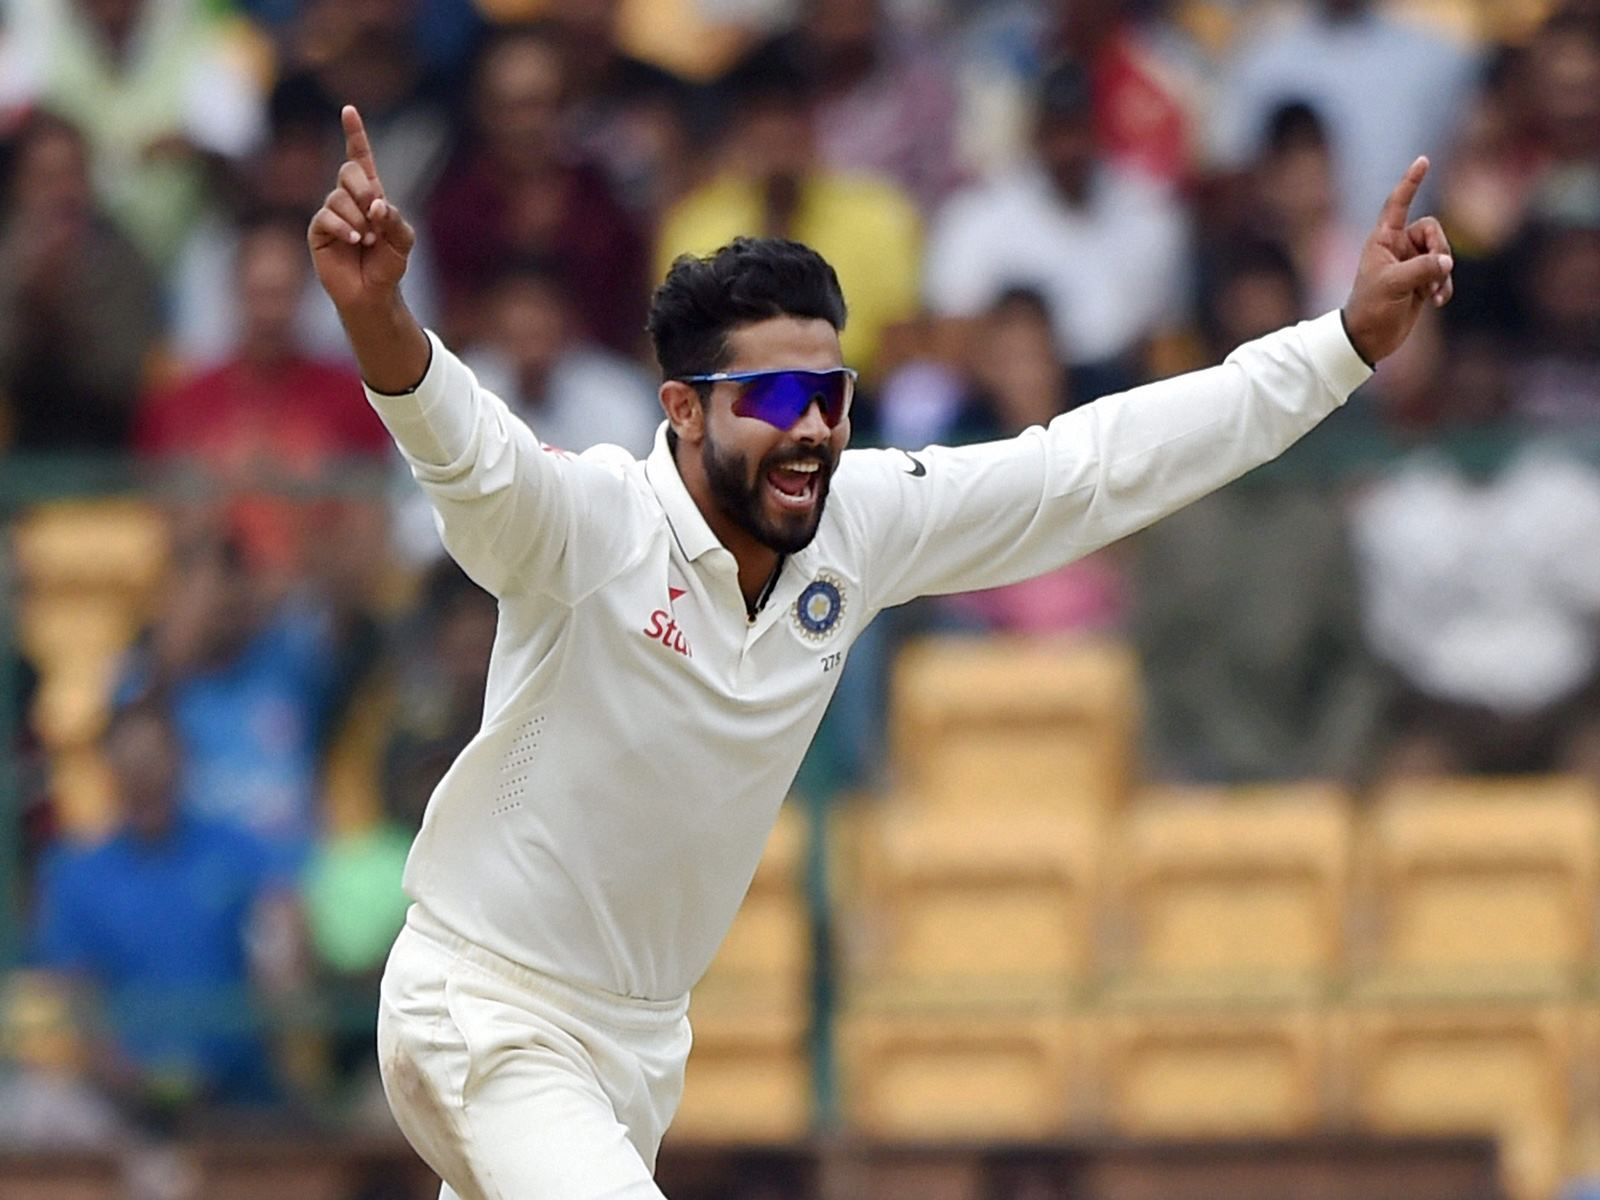 Ravindra Jadeja HD Images And Wallpapers With Playing Cricket